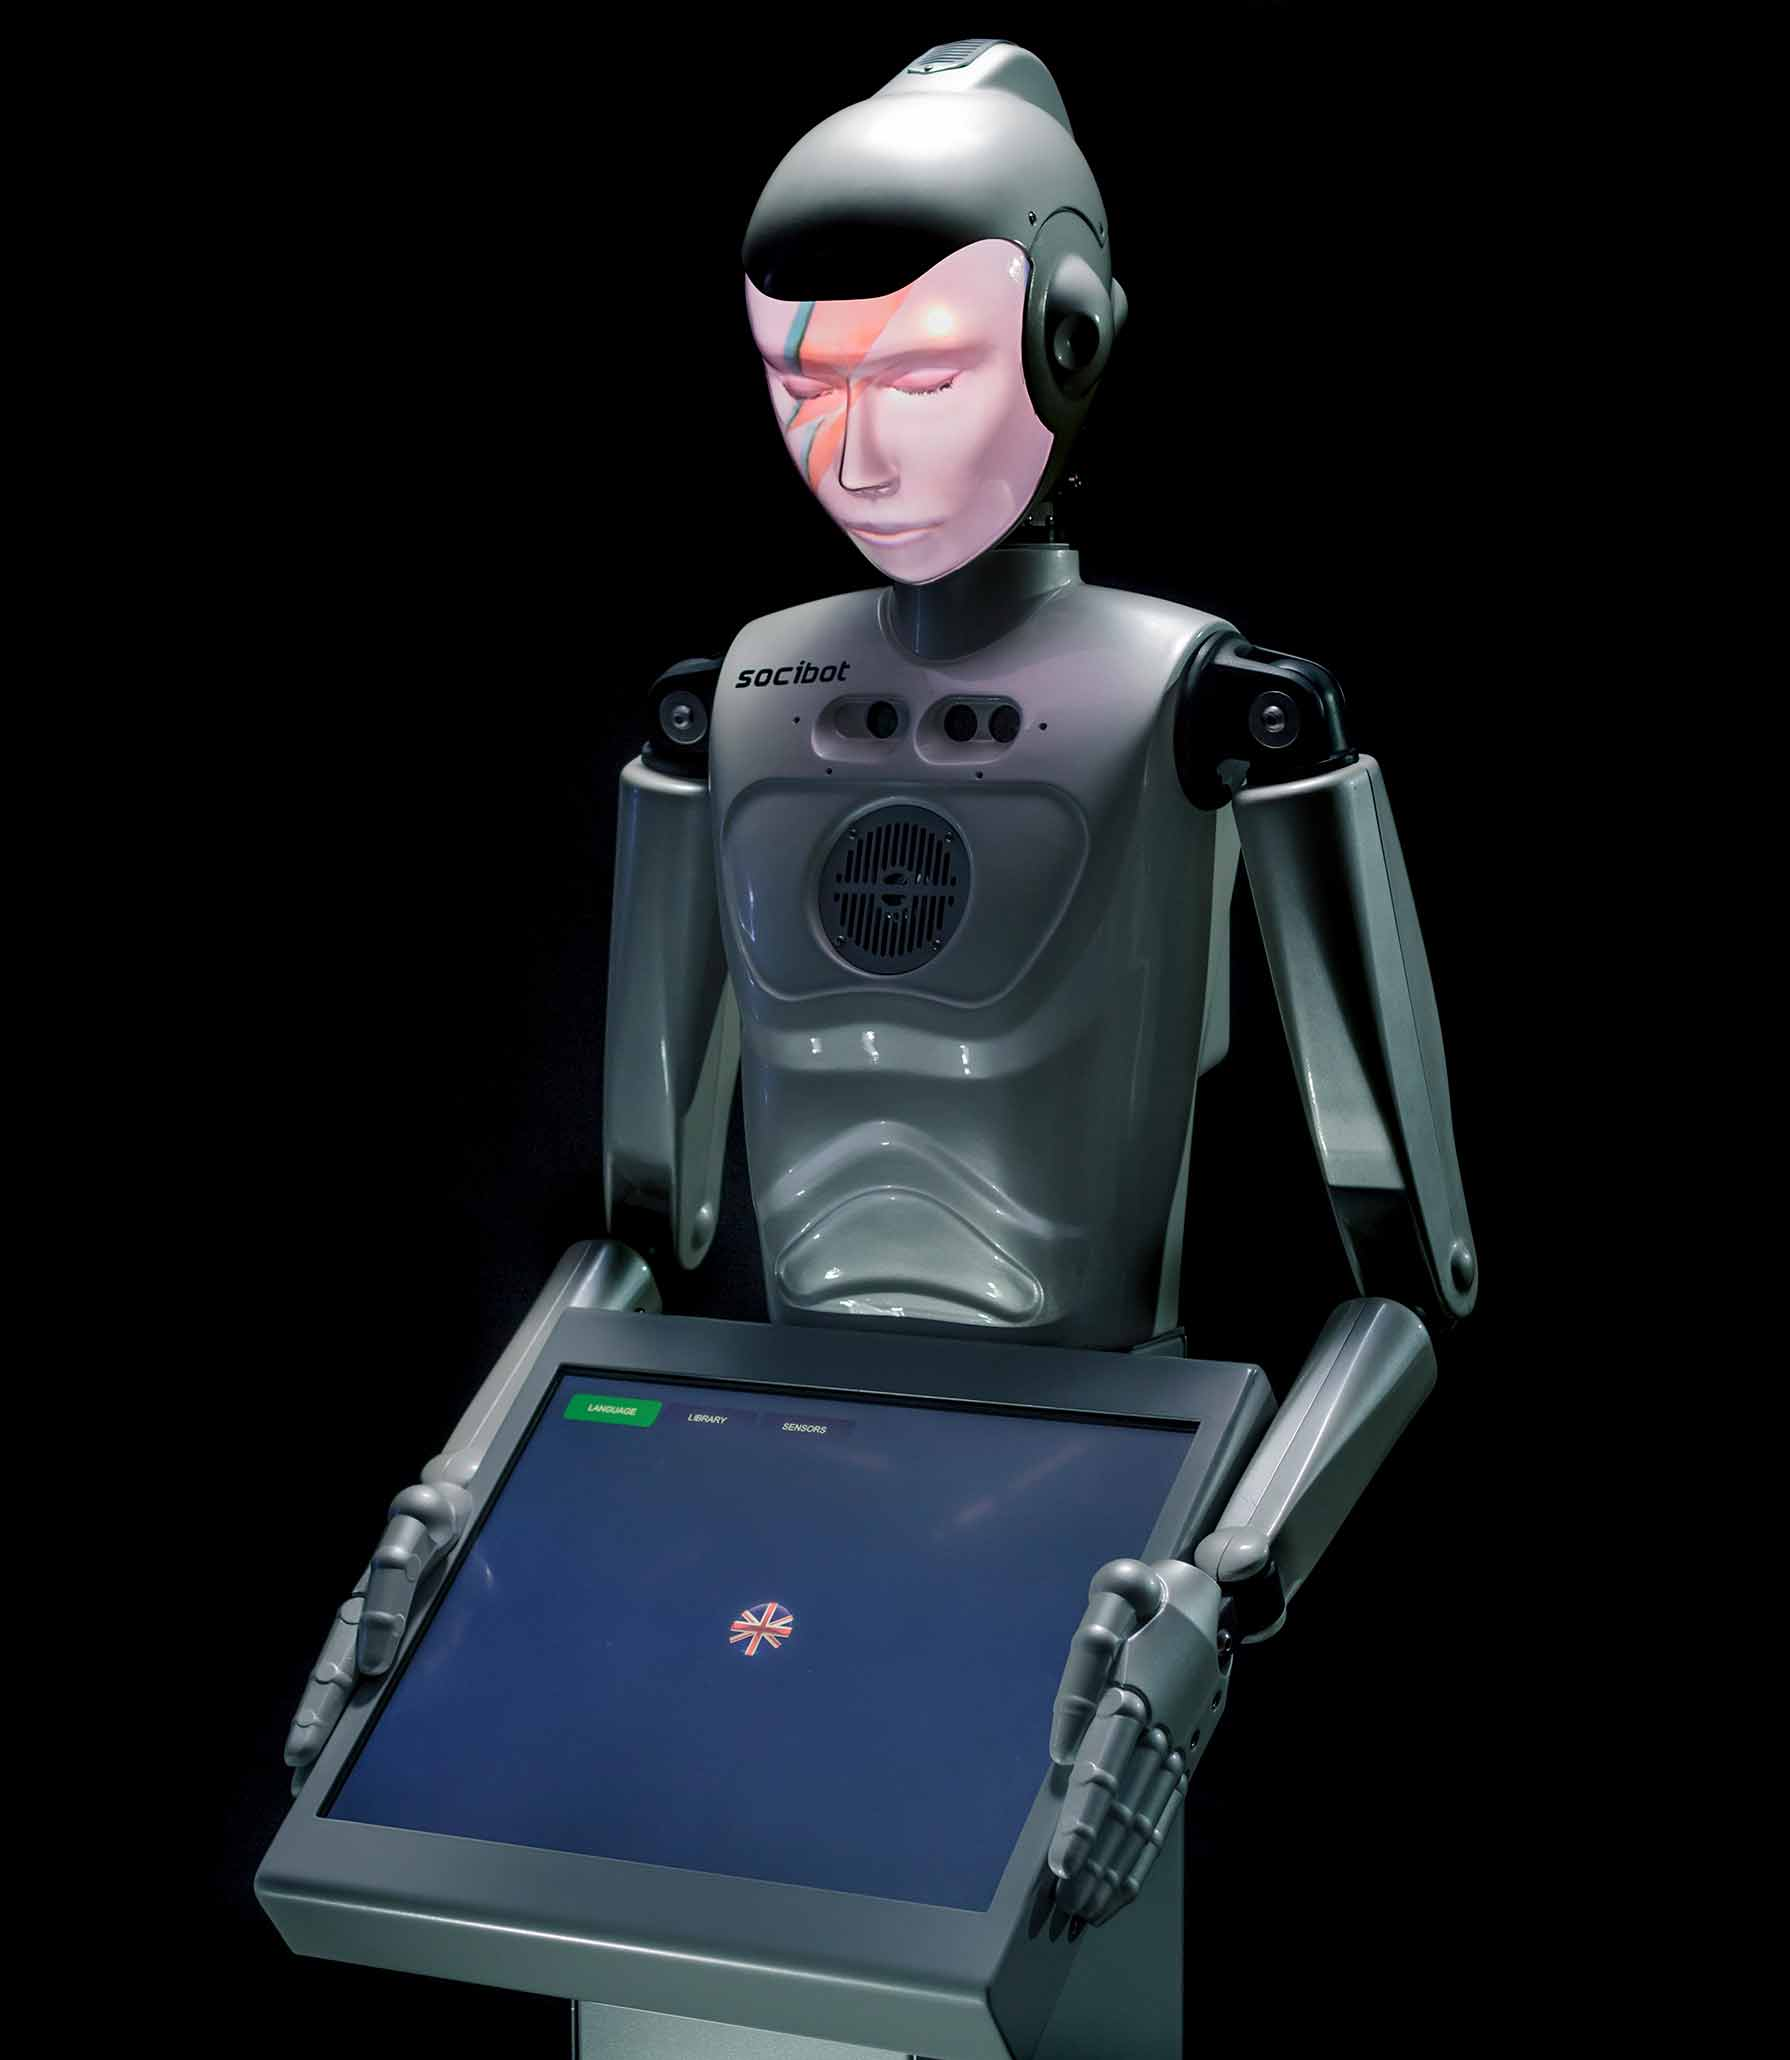 SociBot Kiosk David Bowie Robot Iconic - Engineered Arts